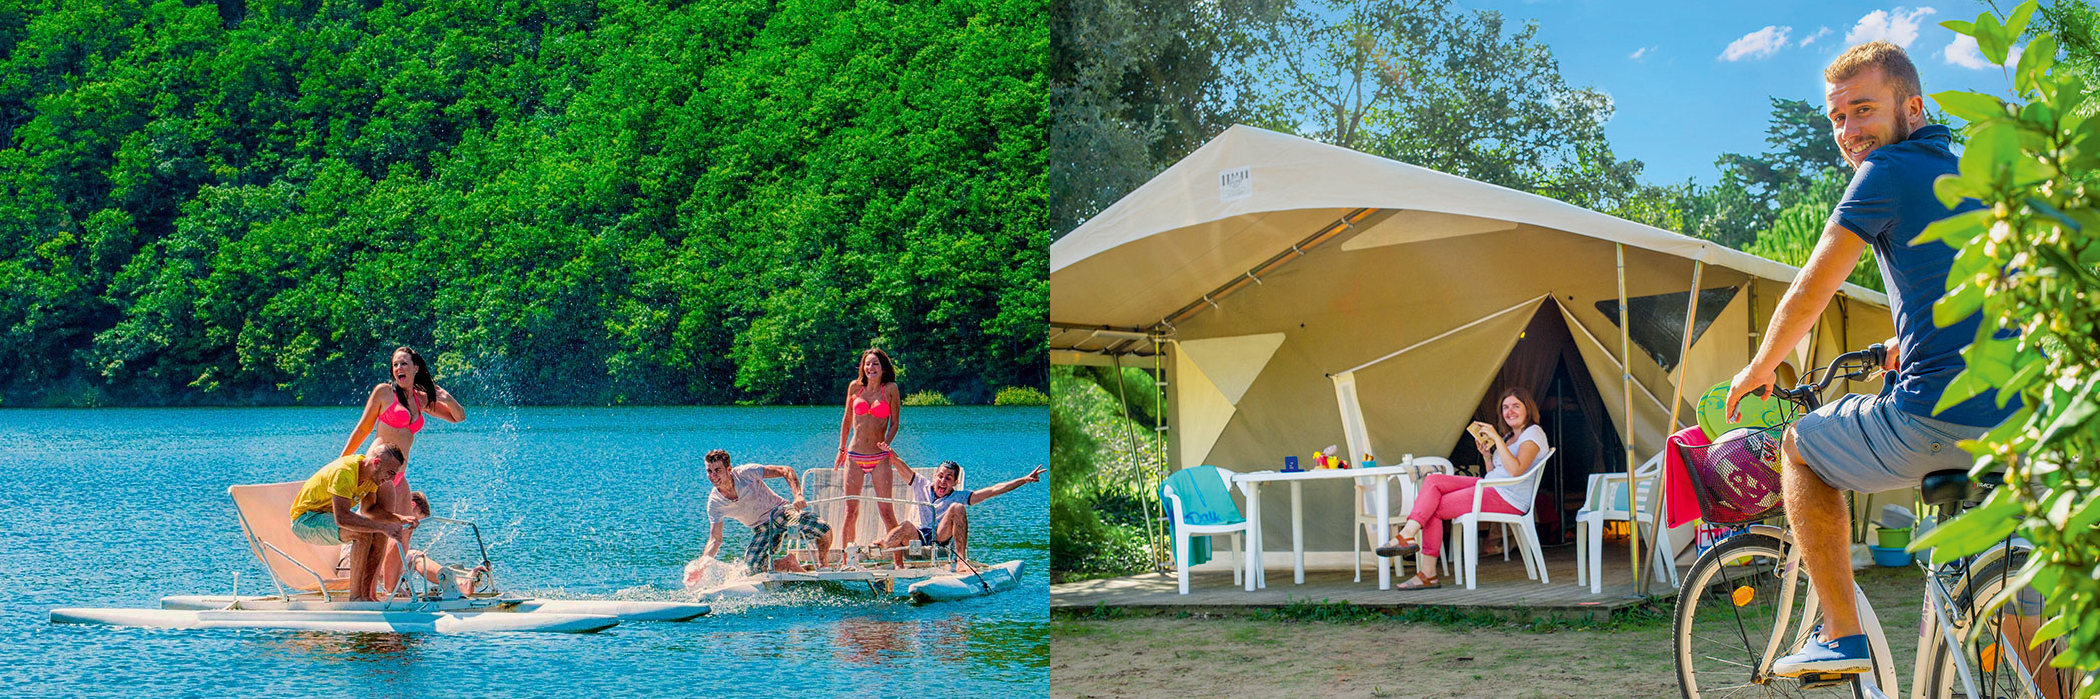 camping deluxe france Glamping famille incroyable meilleur haut gamme plage forêt belles étoiles exception mer 2017 2018